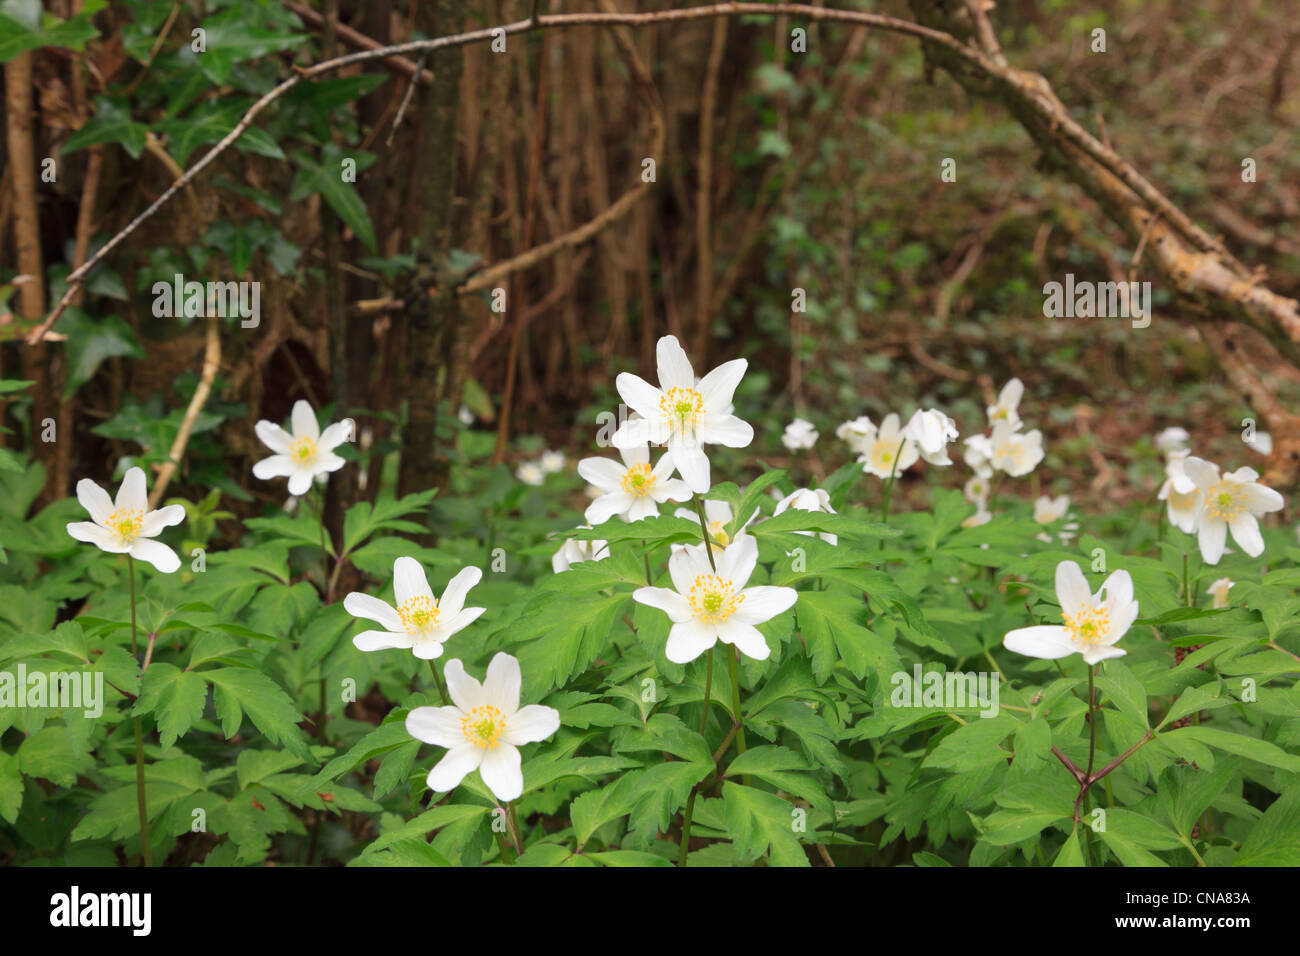 Close-up of Wood Anemones Anemone nemorosa flowering in spring in a coppiced woodland. Anglesey North Wales, UK. Stock Photo